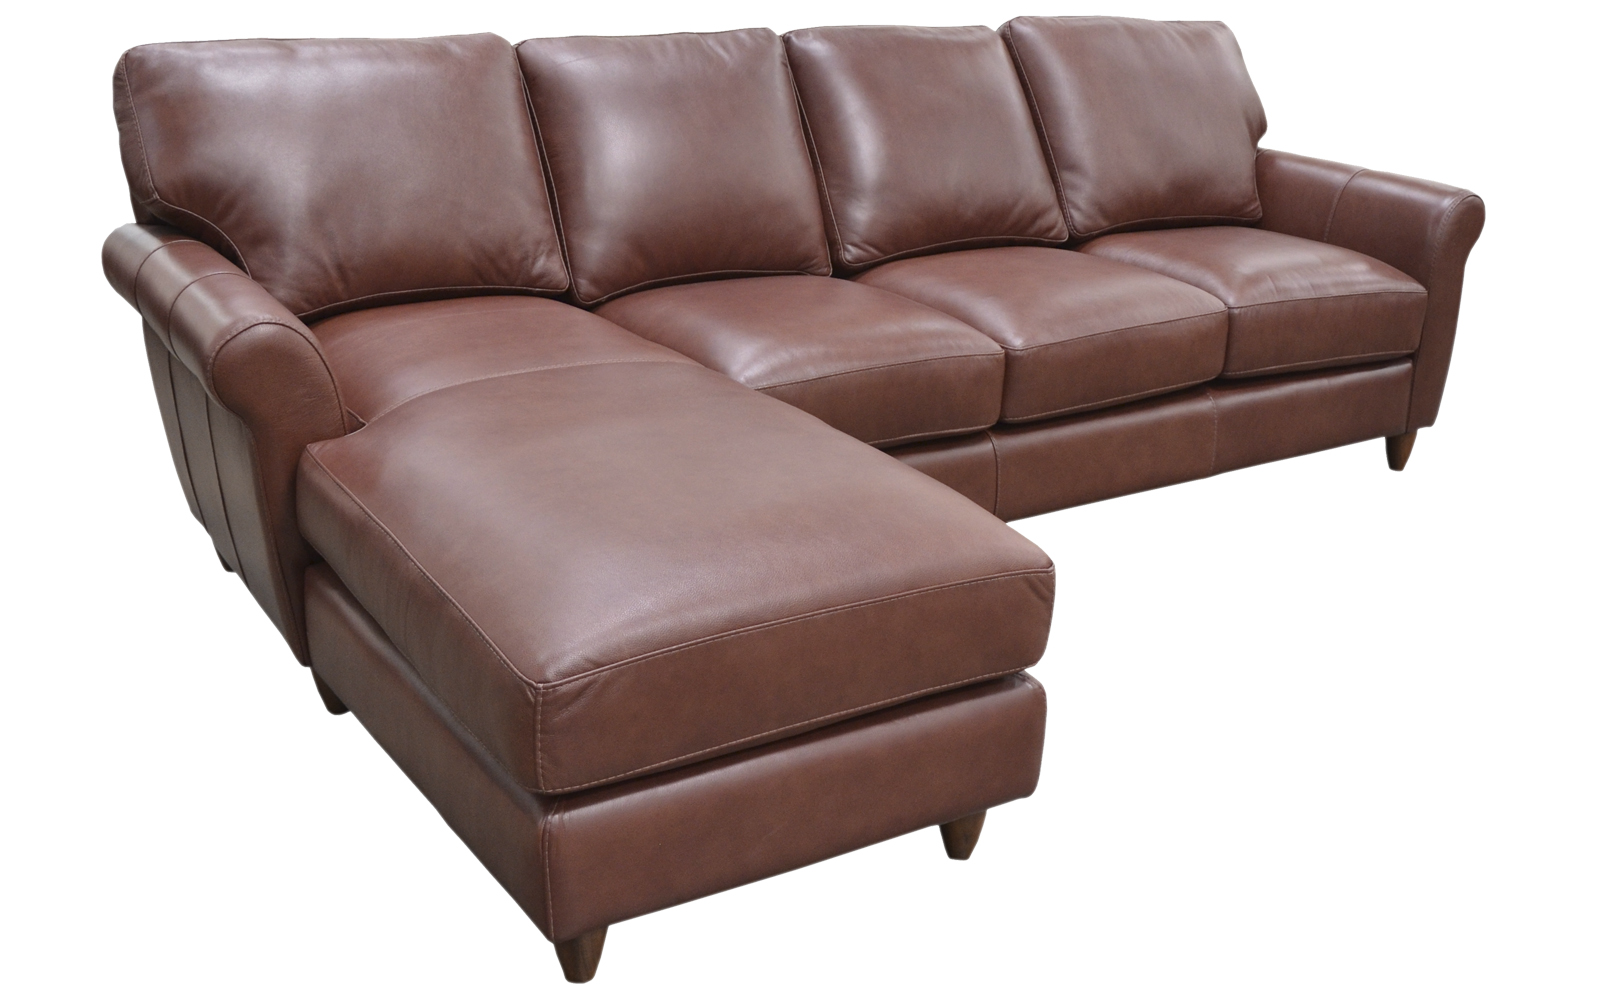 Cameo chaise sectional arizona leather interiors for Arizona leather sectional sofa with chaise